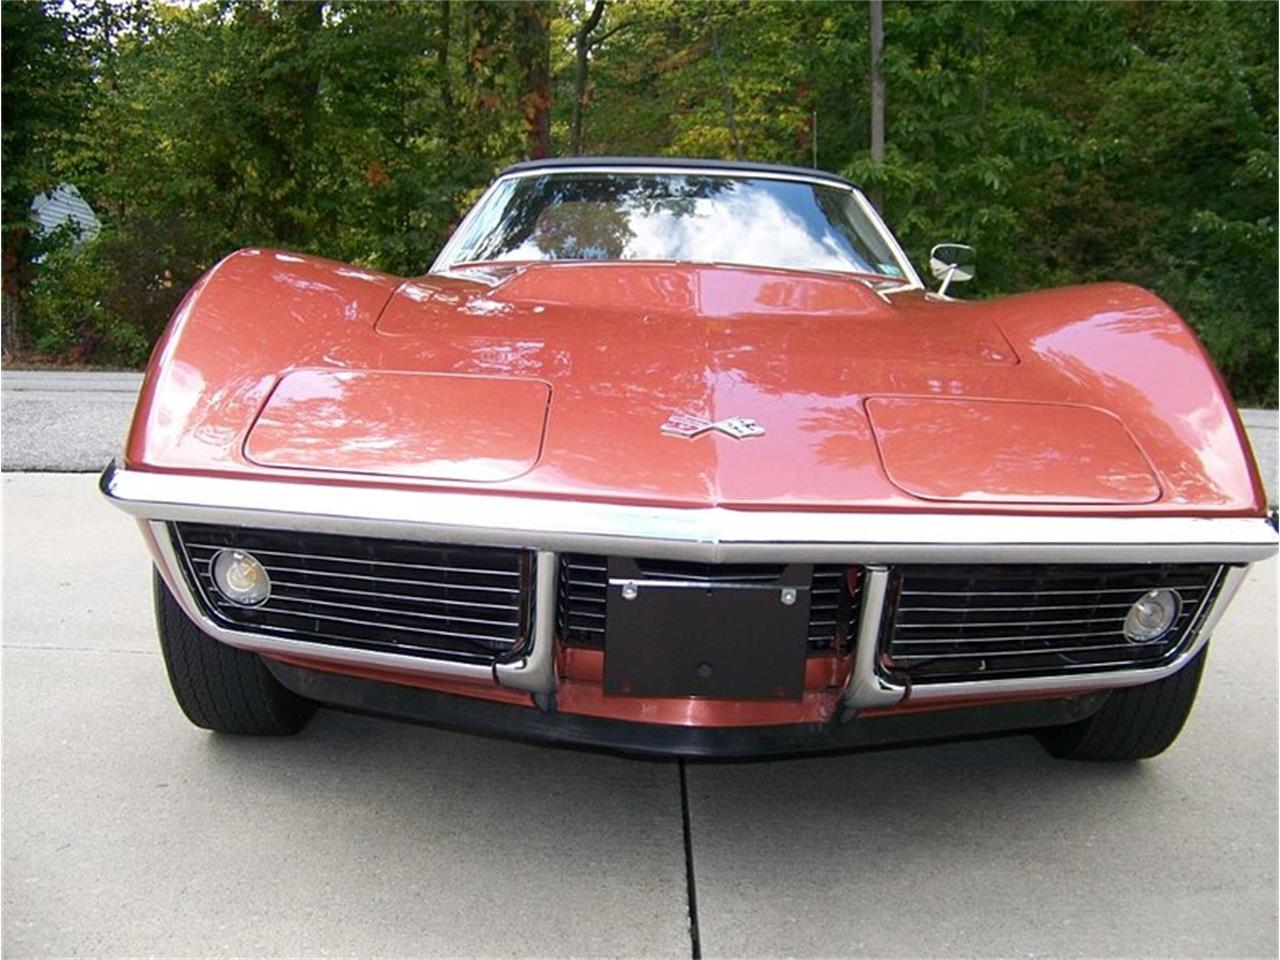 1968 Chevrolet Corvette (CC-1238082) for sale in Greensboro, North Carolina